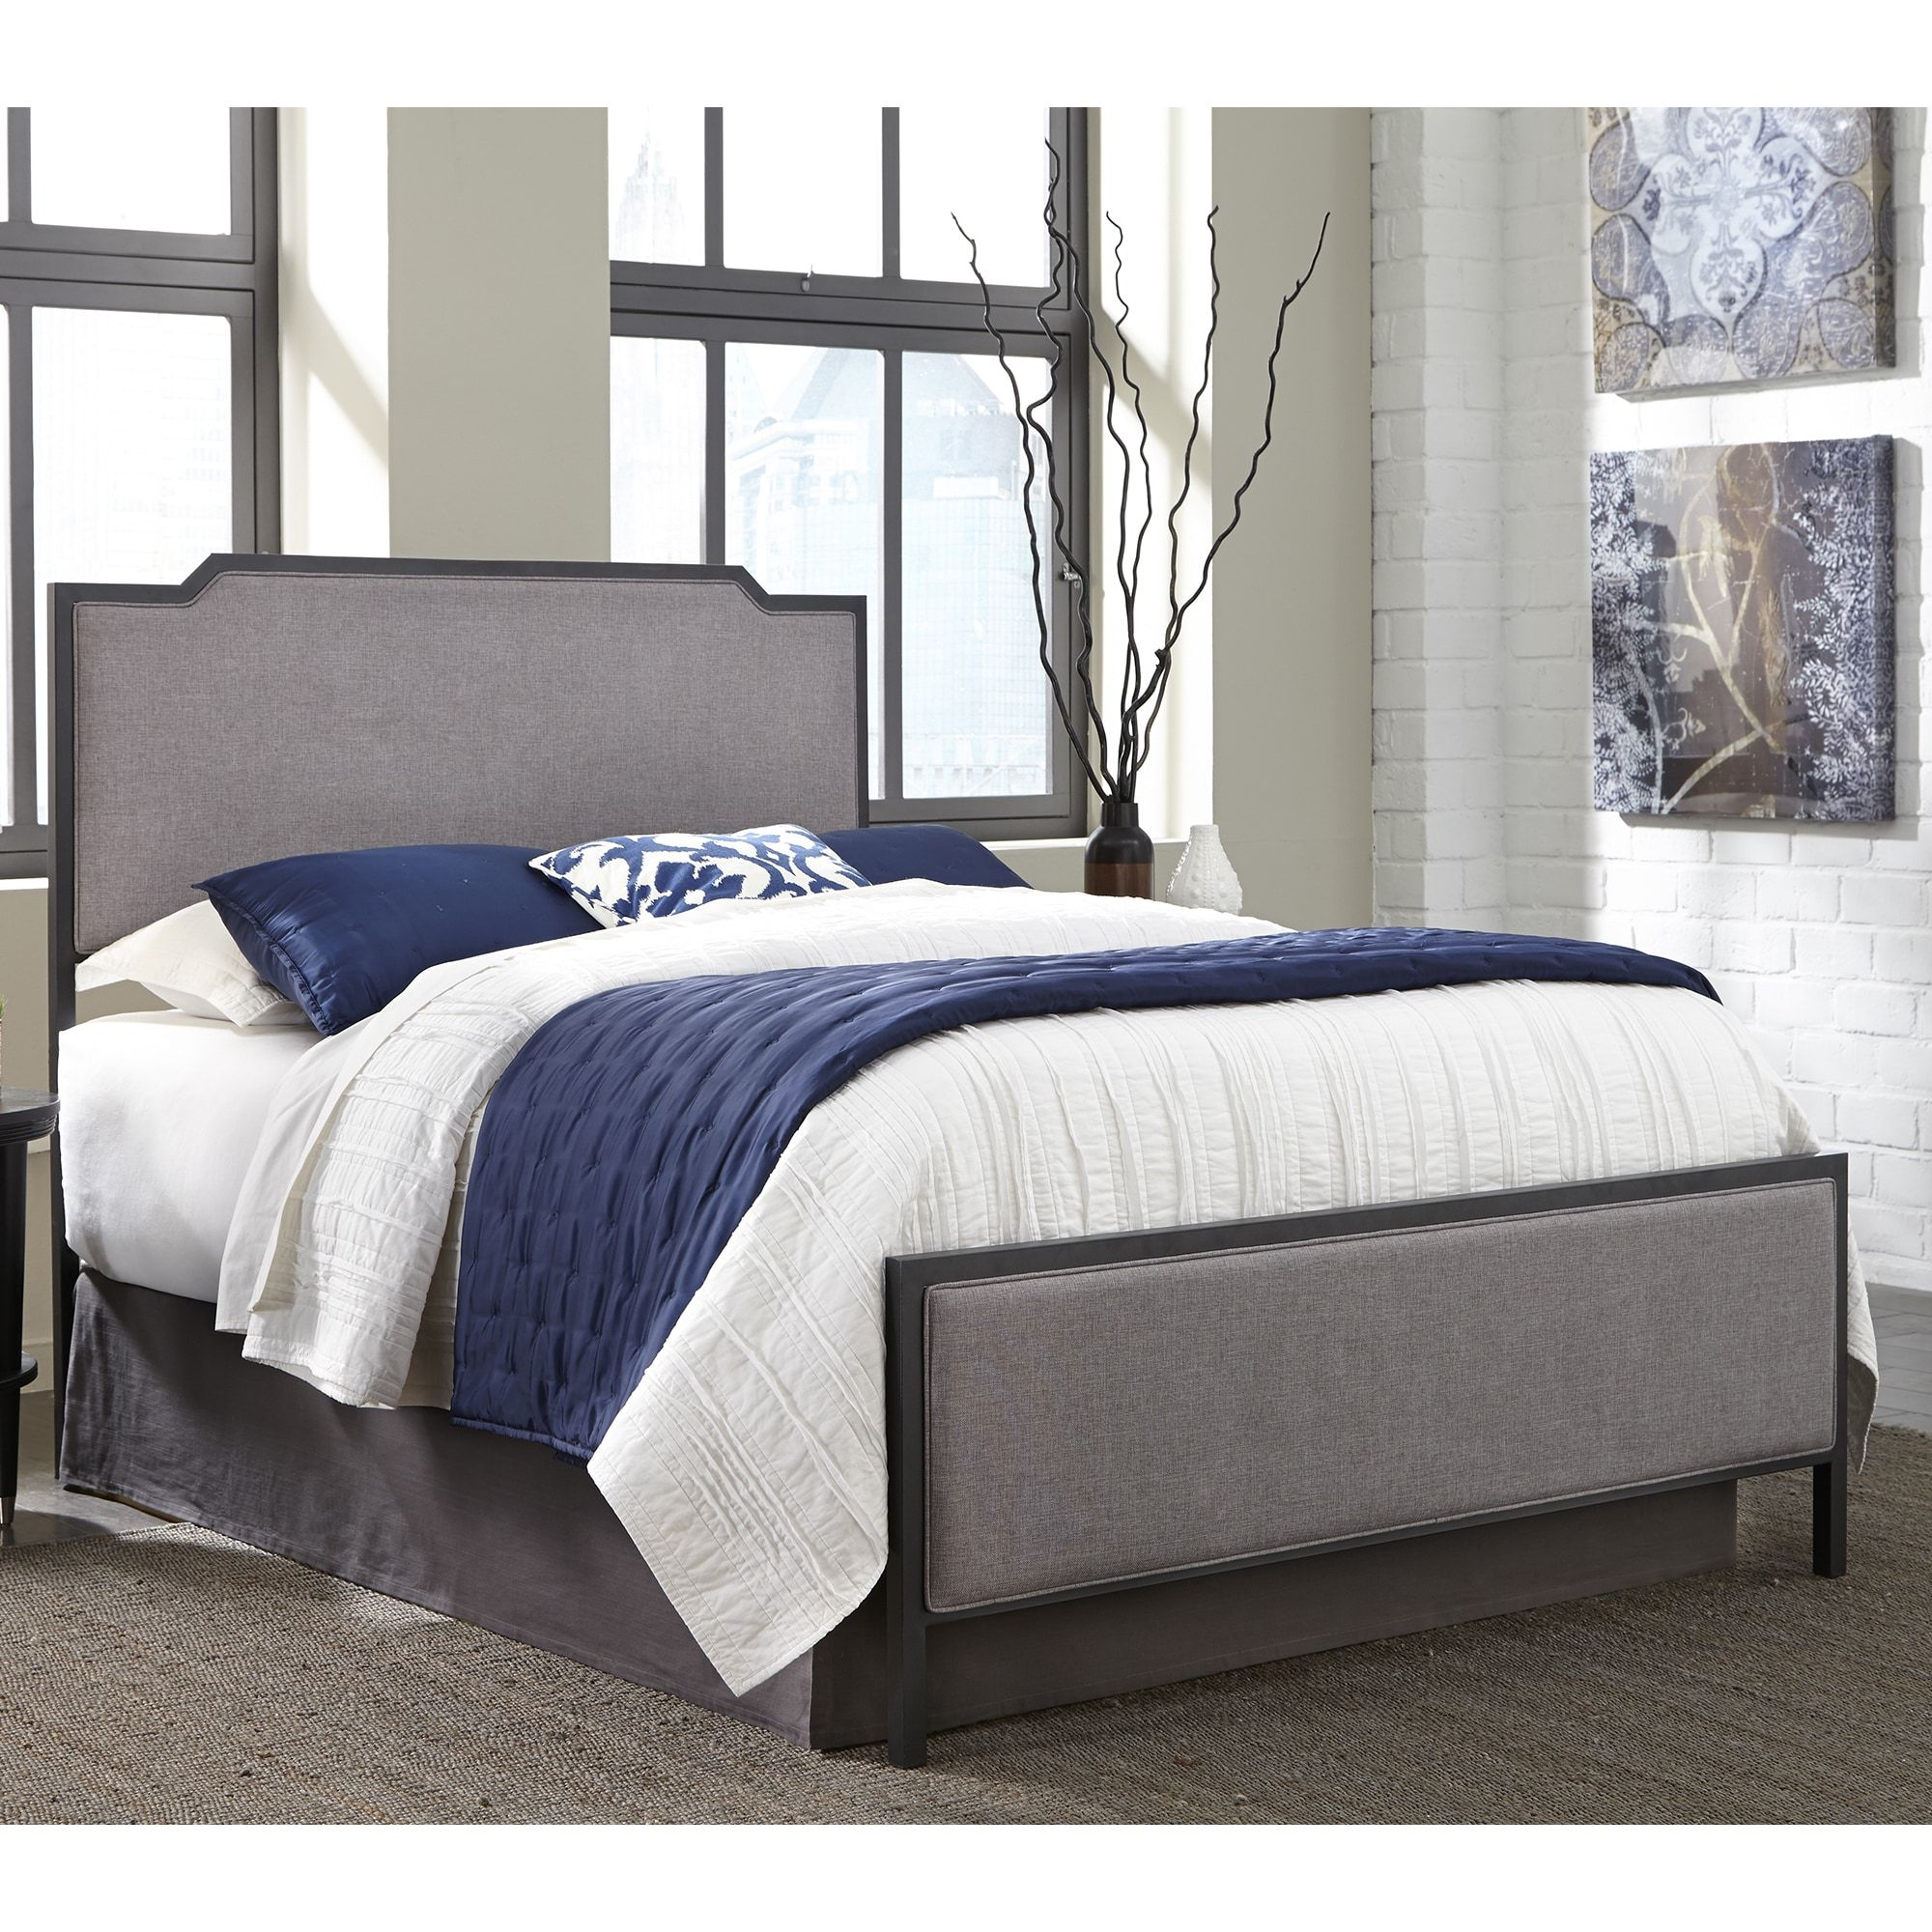 Fashion Bed Group Bayview Metal Bed in Black Pearl Finish